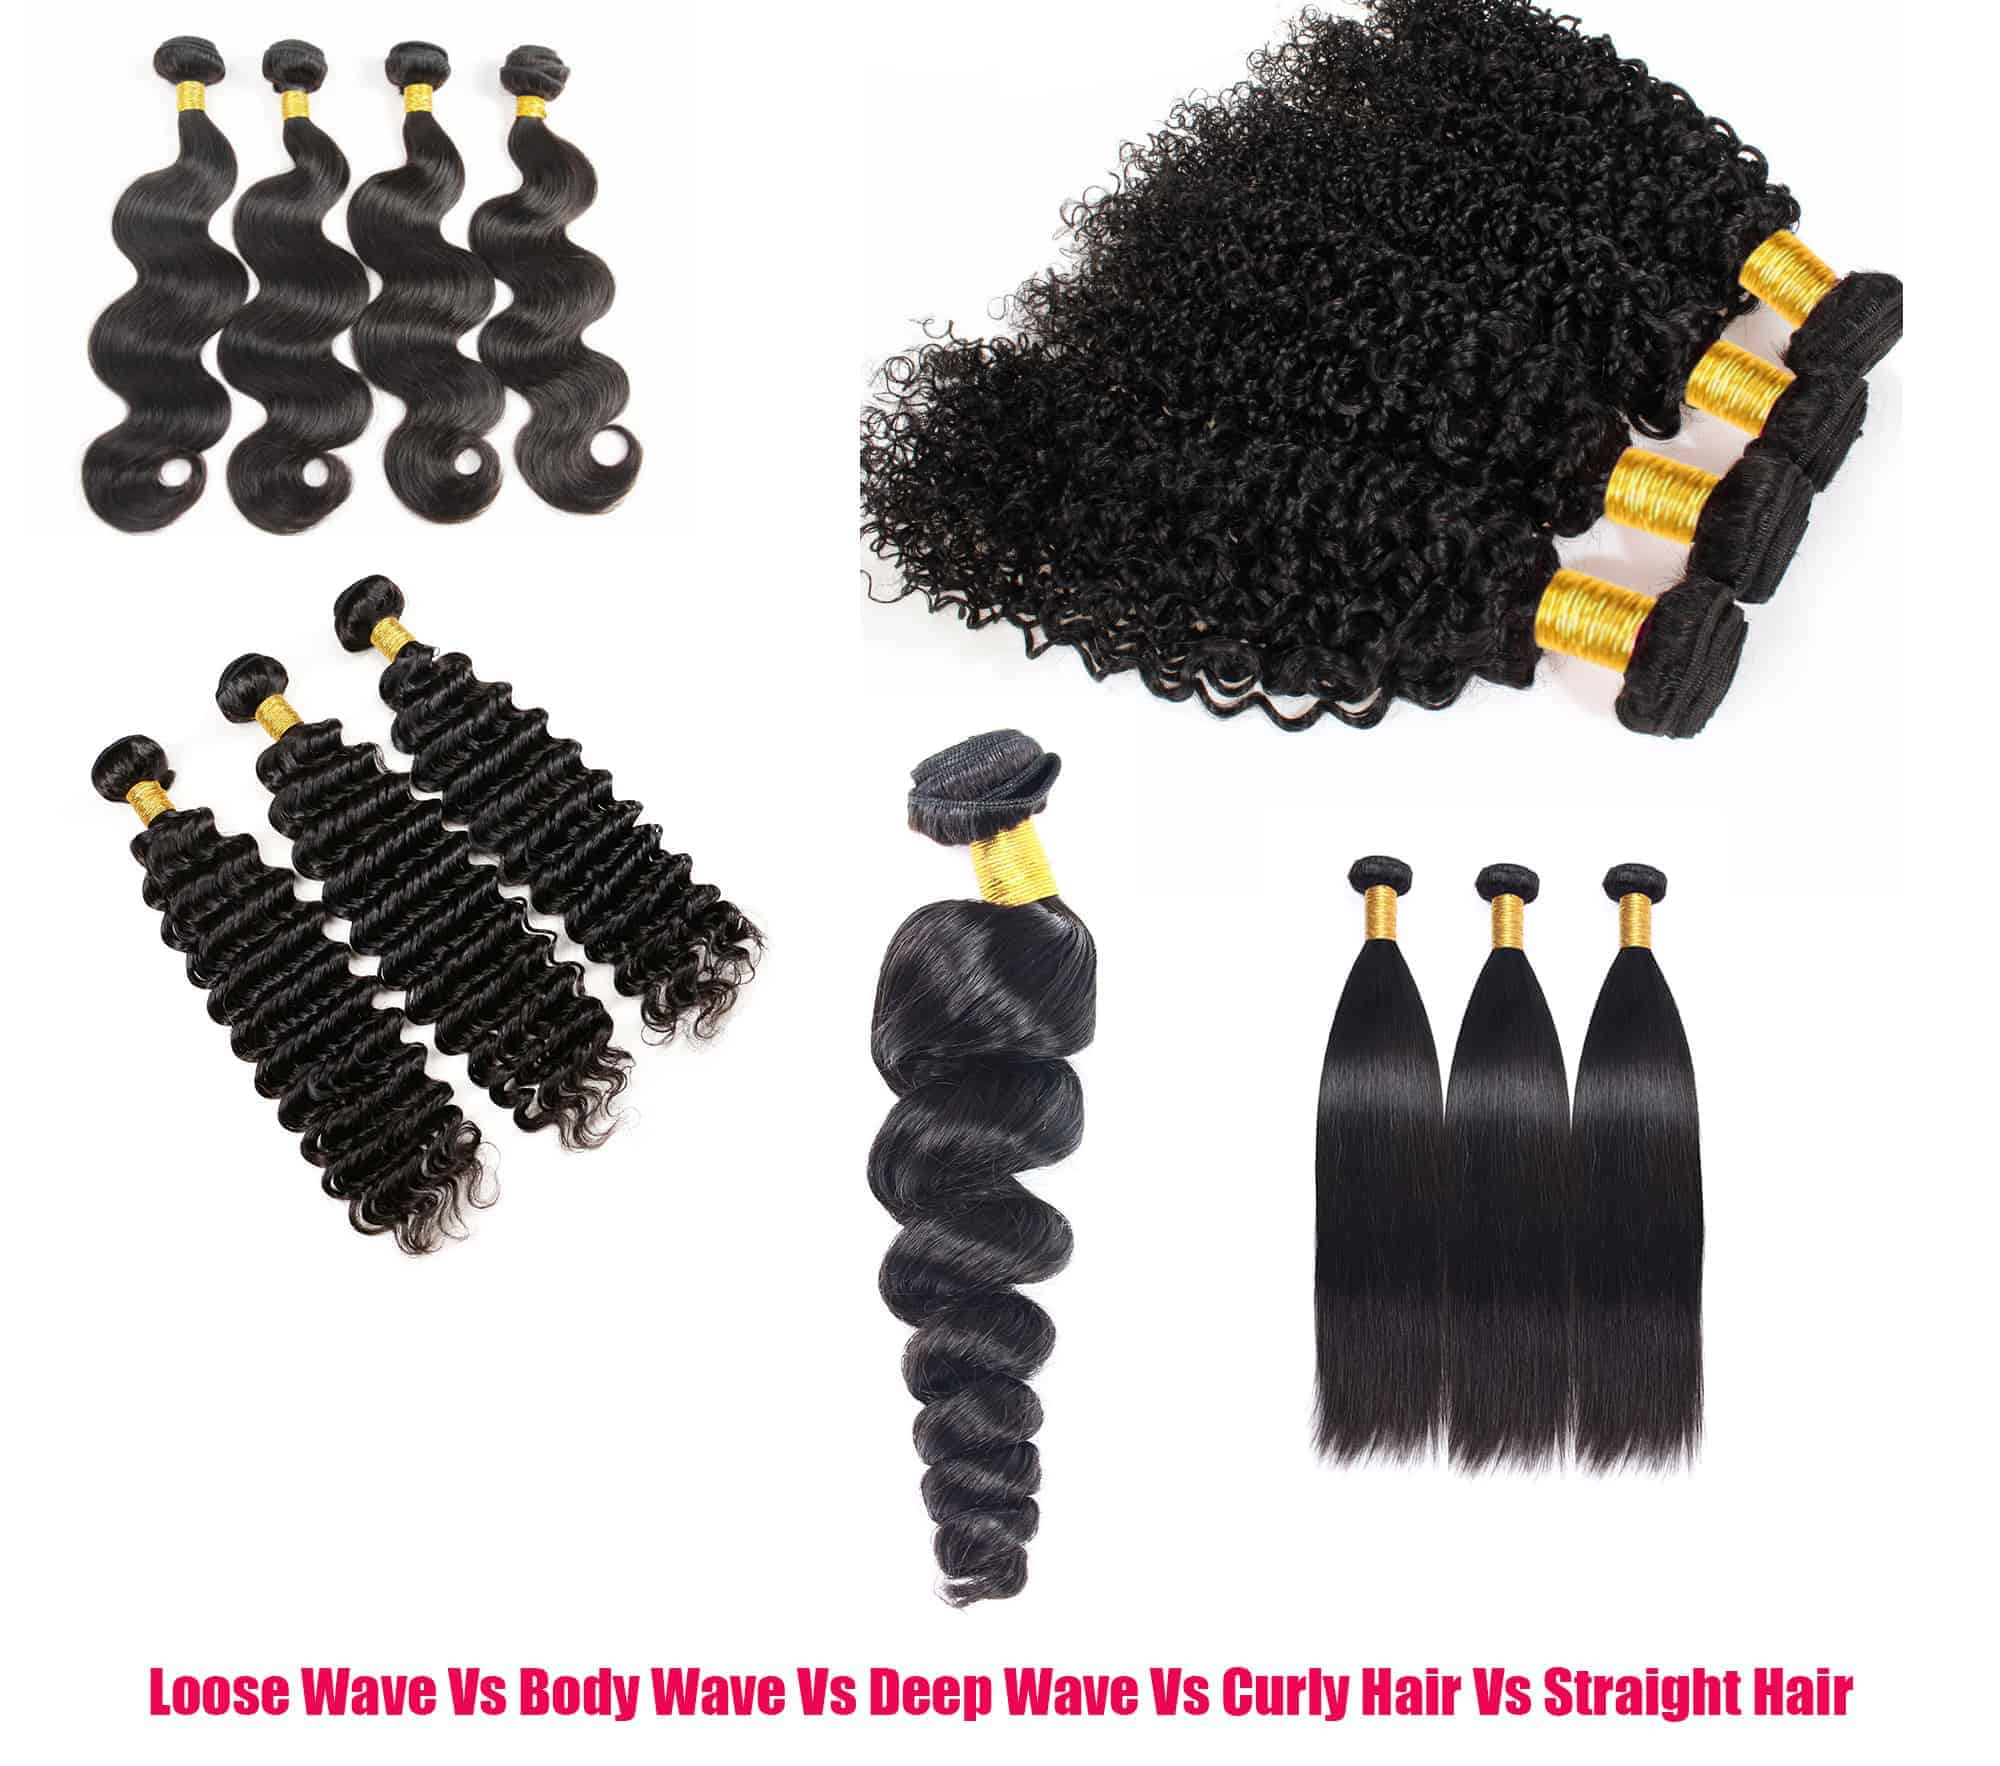 Loose Wave Vs Body Wave Vs Deep Wave Vs Curly Hair Vs Straight Hair